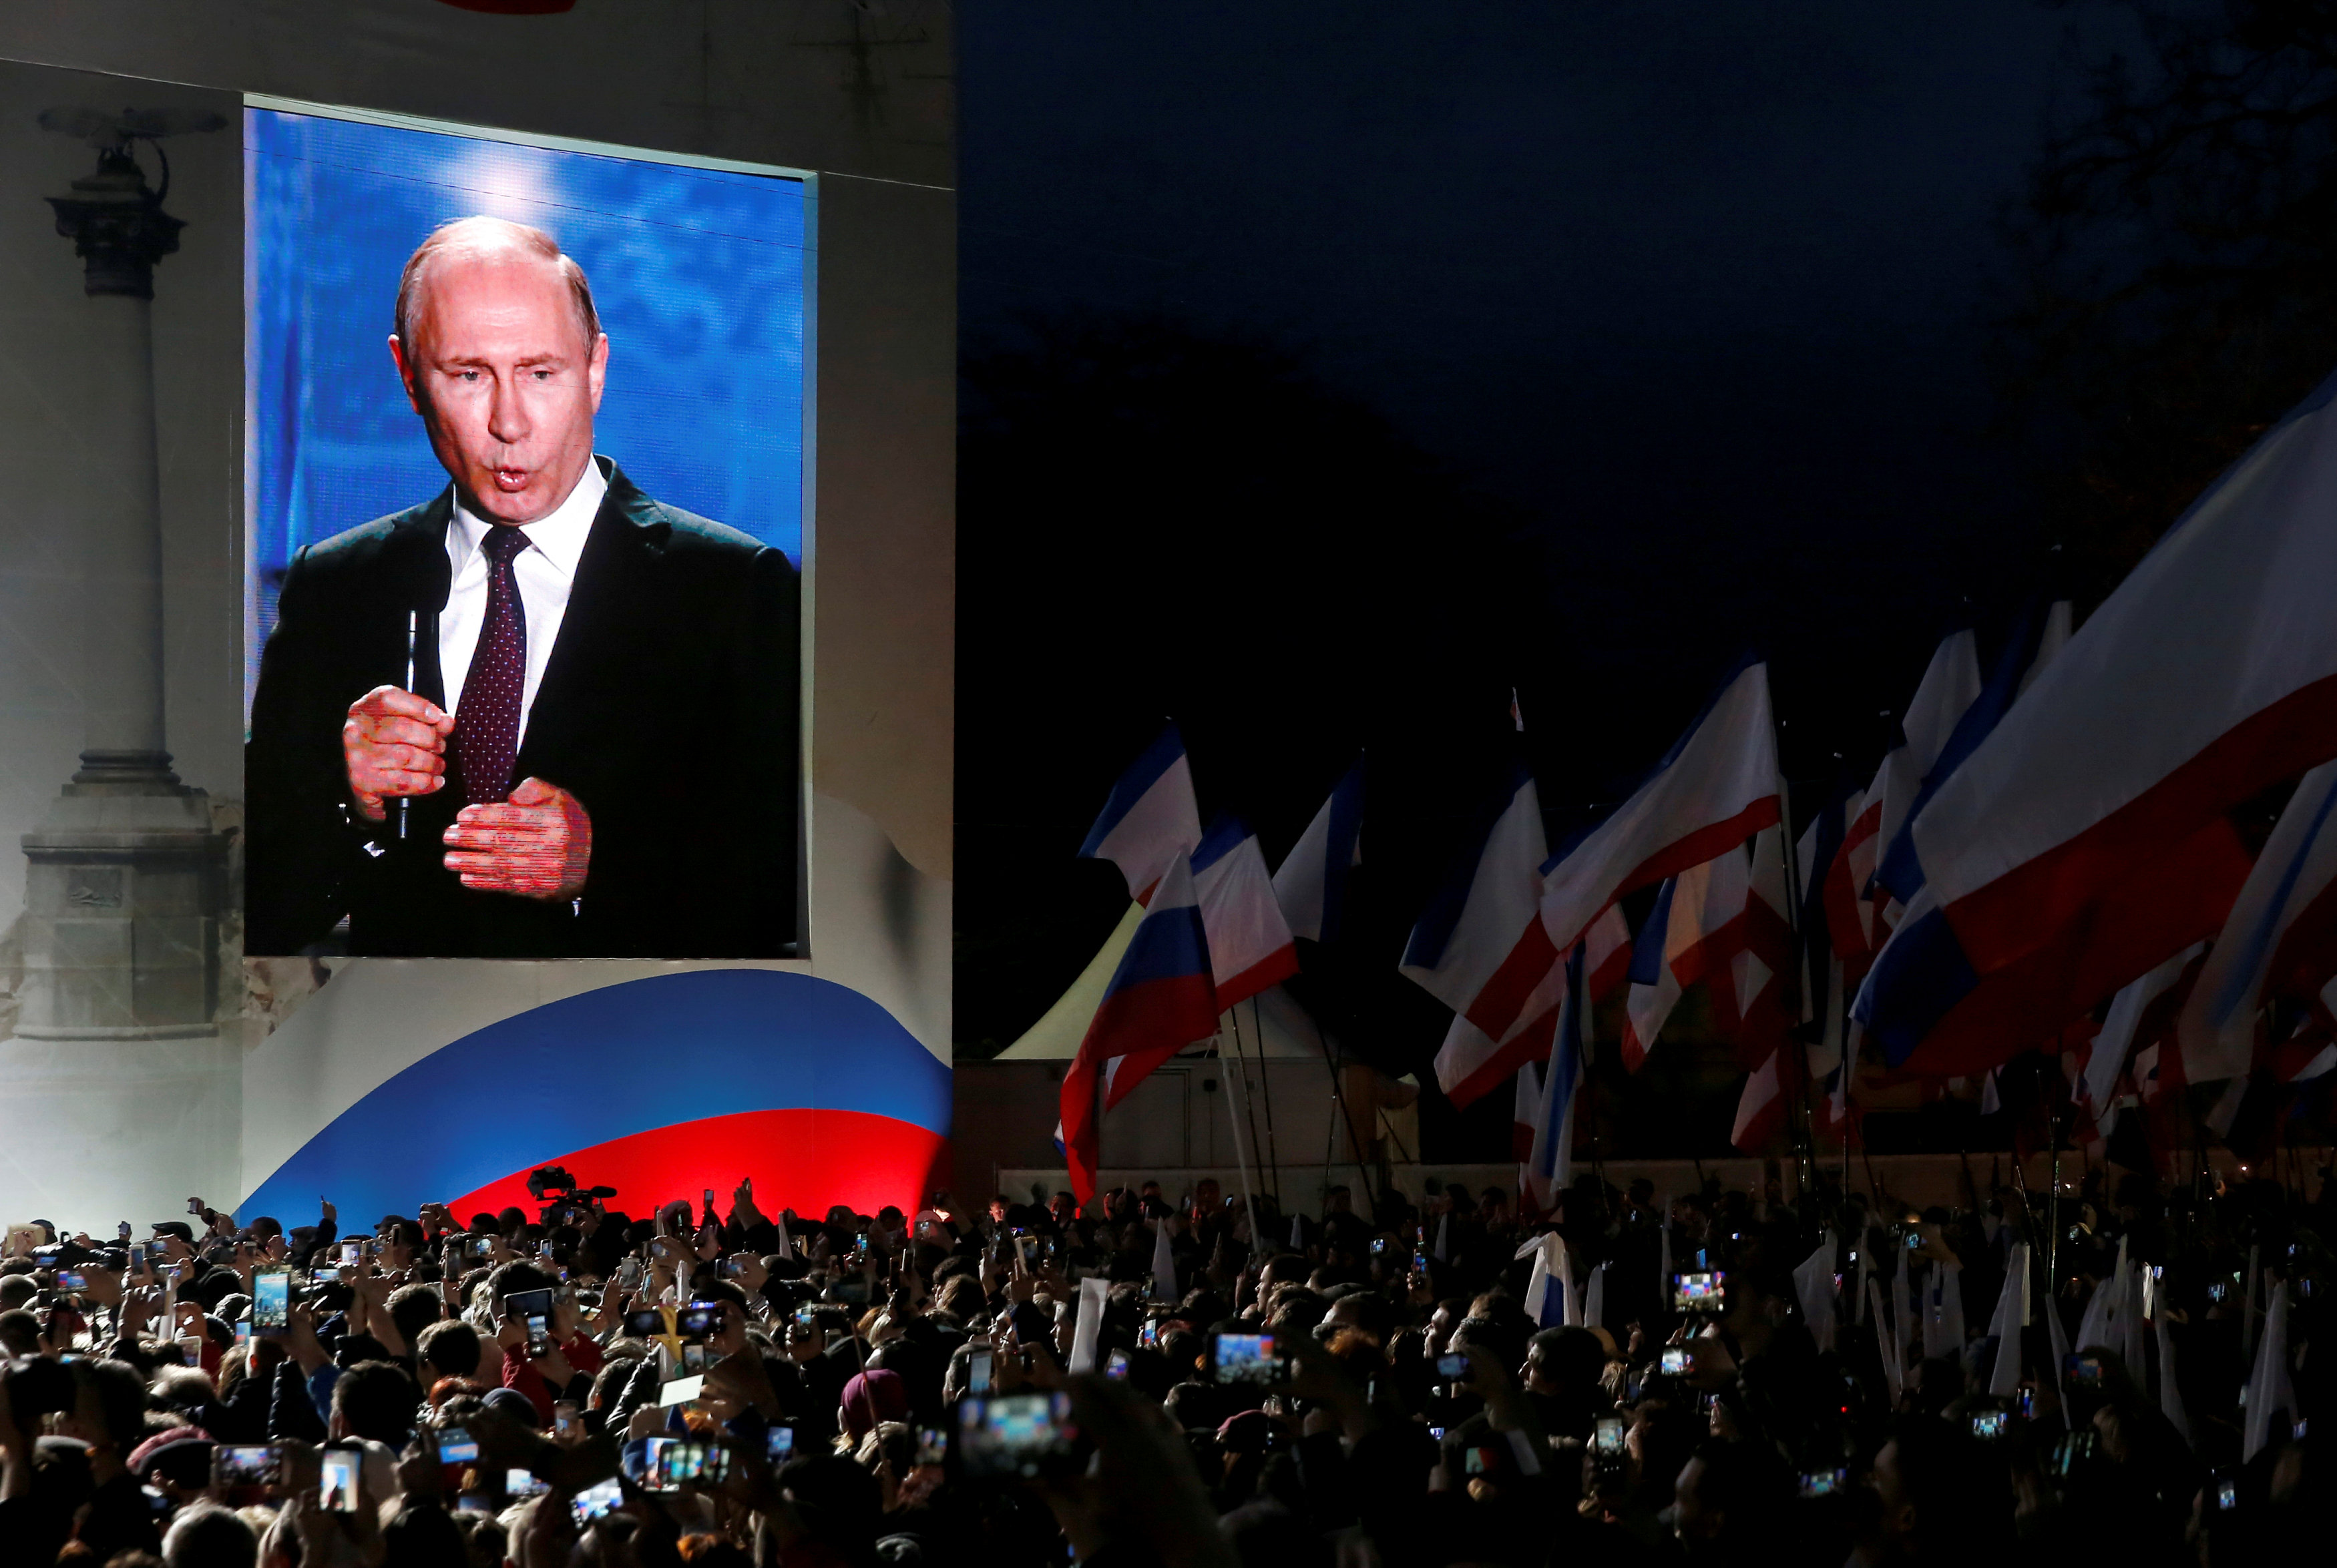 FILE PHOTO: Russian President Vladimir Putin addresses the audience during a rally marking the fourth anniversary of Russia's annexation of Ukraine's Crimea region in the Black Sea port of Sevastopol, Crimea, March 14, 2018. REUTERS/Maxim Shemetov/File Photo